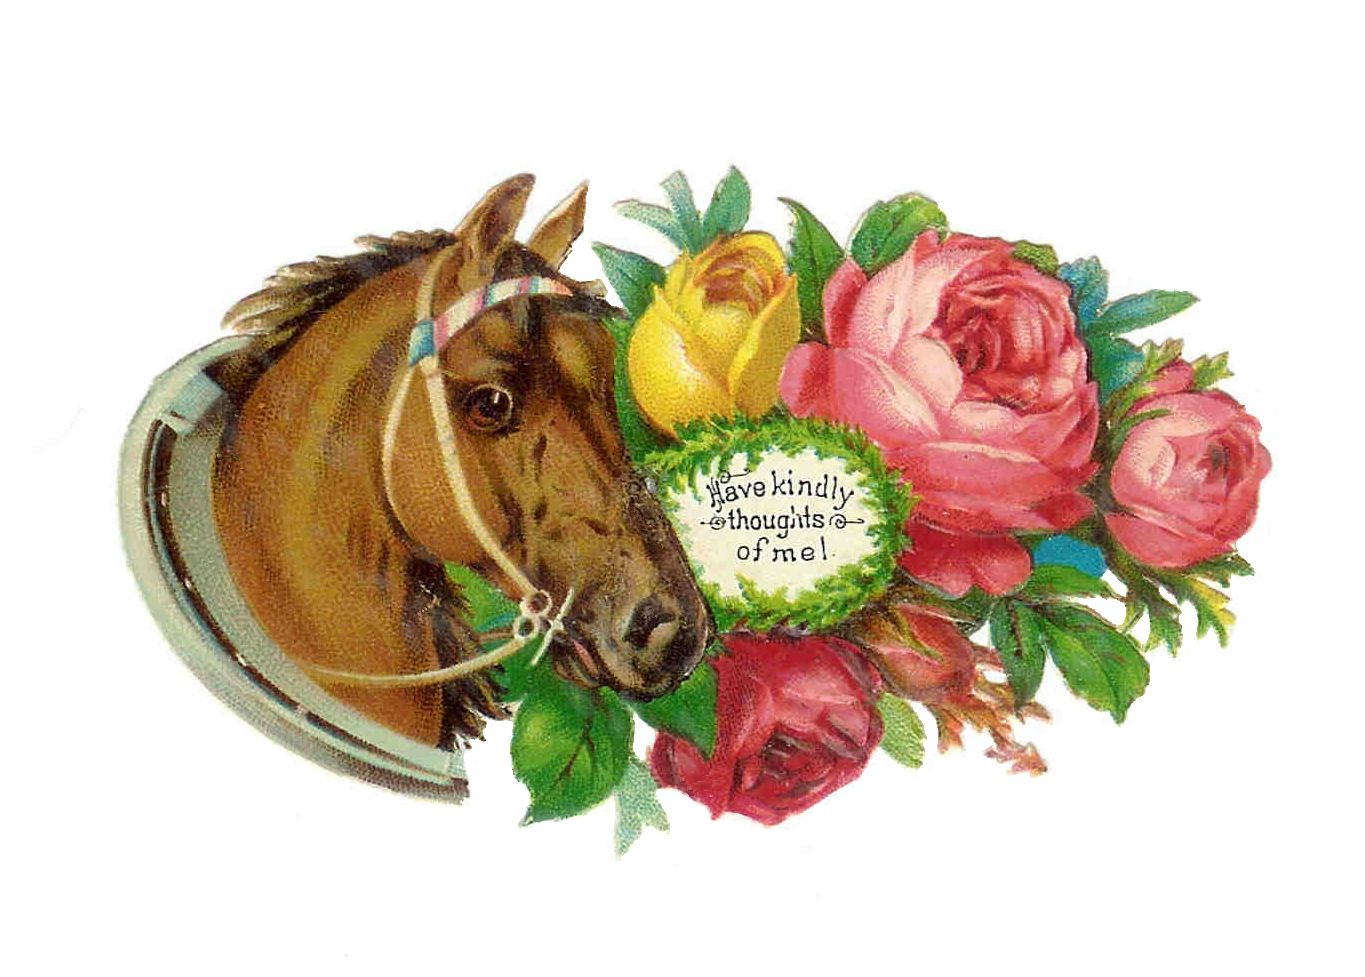 Antique Images  Free Horse Clip Art  Antique Die Cut Of Horse And